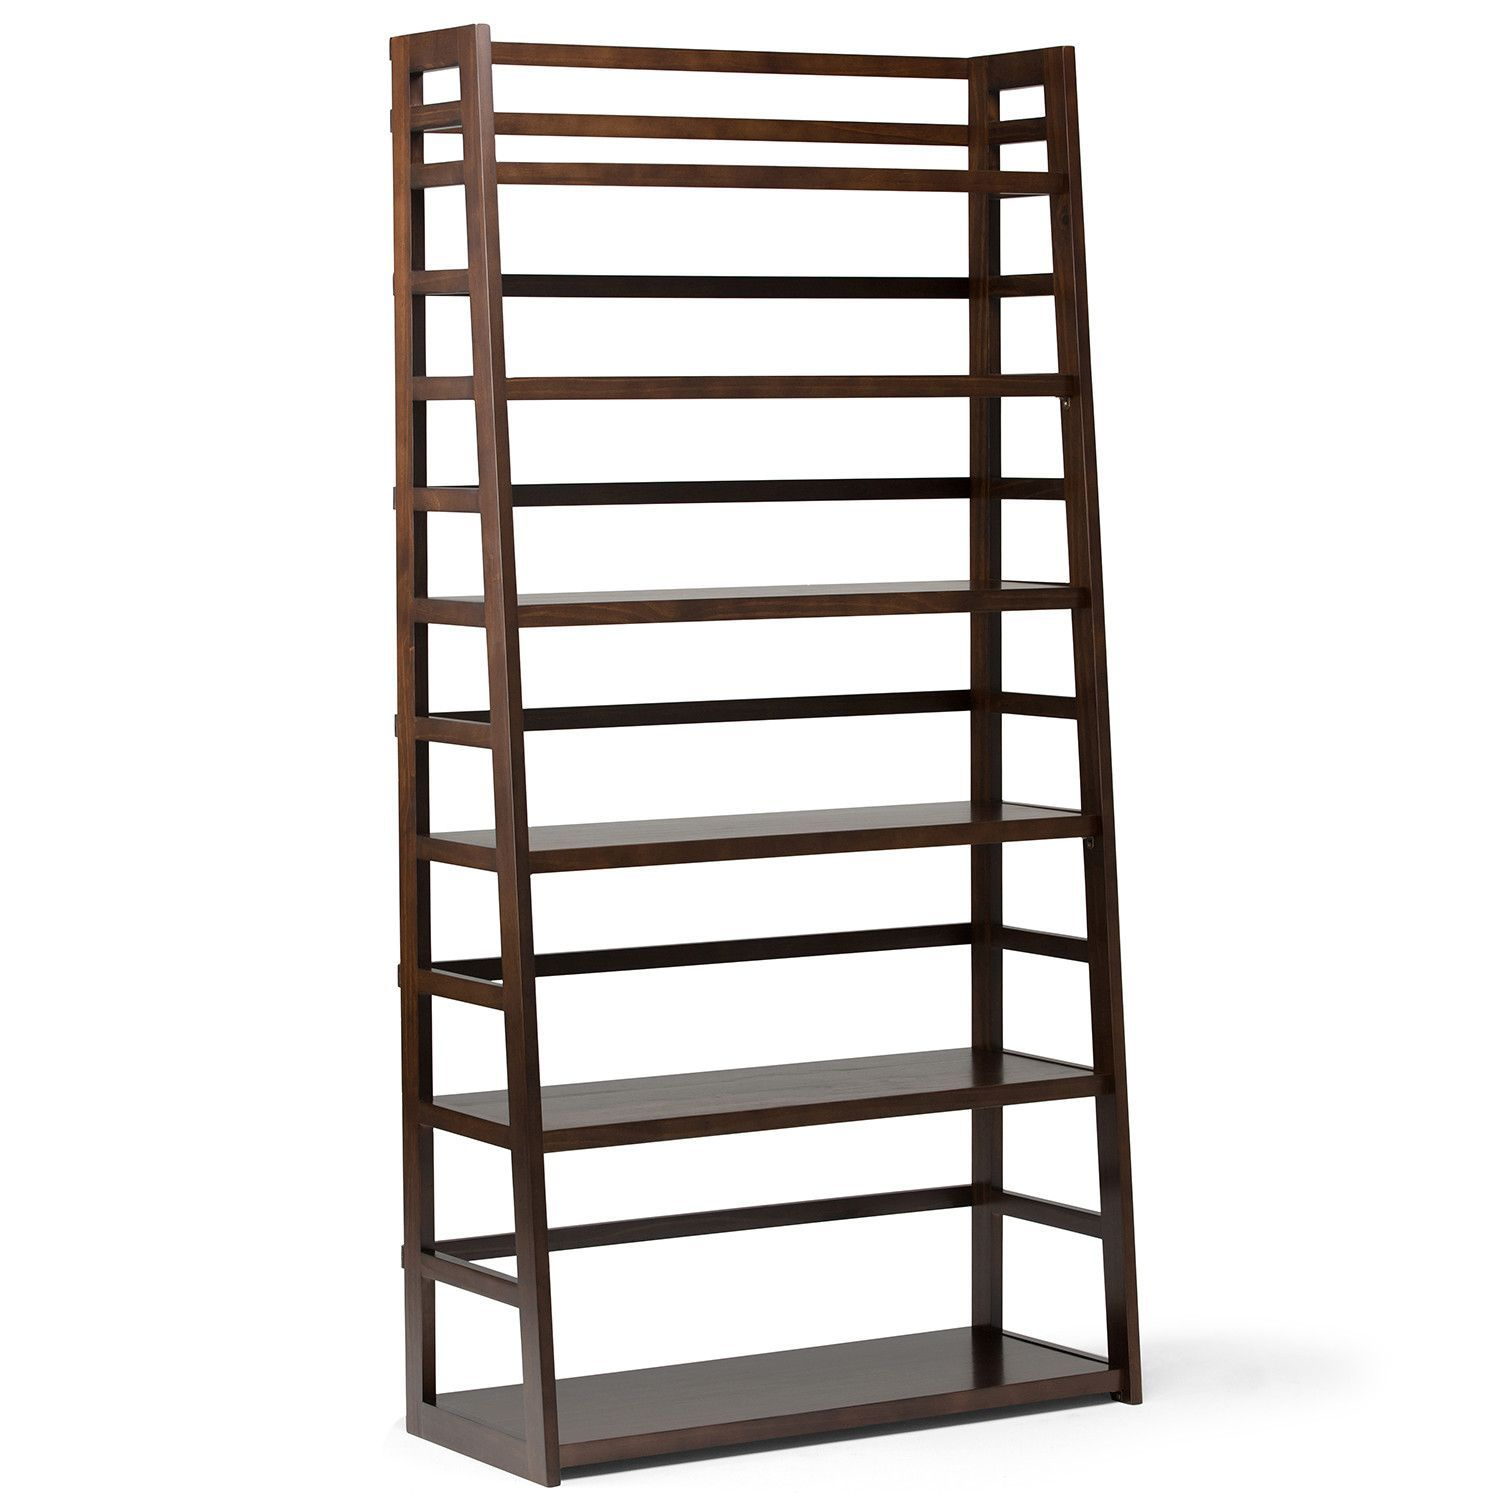 folding f bookcases shelf image wide convenience itm multiple concepts loading is bookcase metal